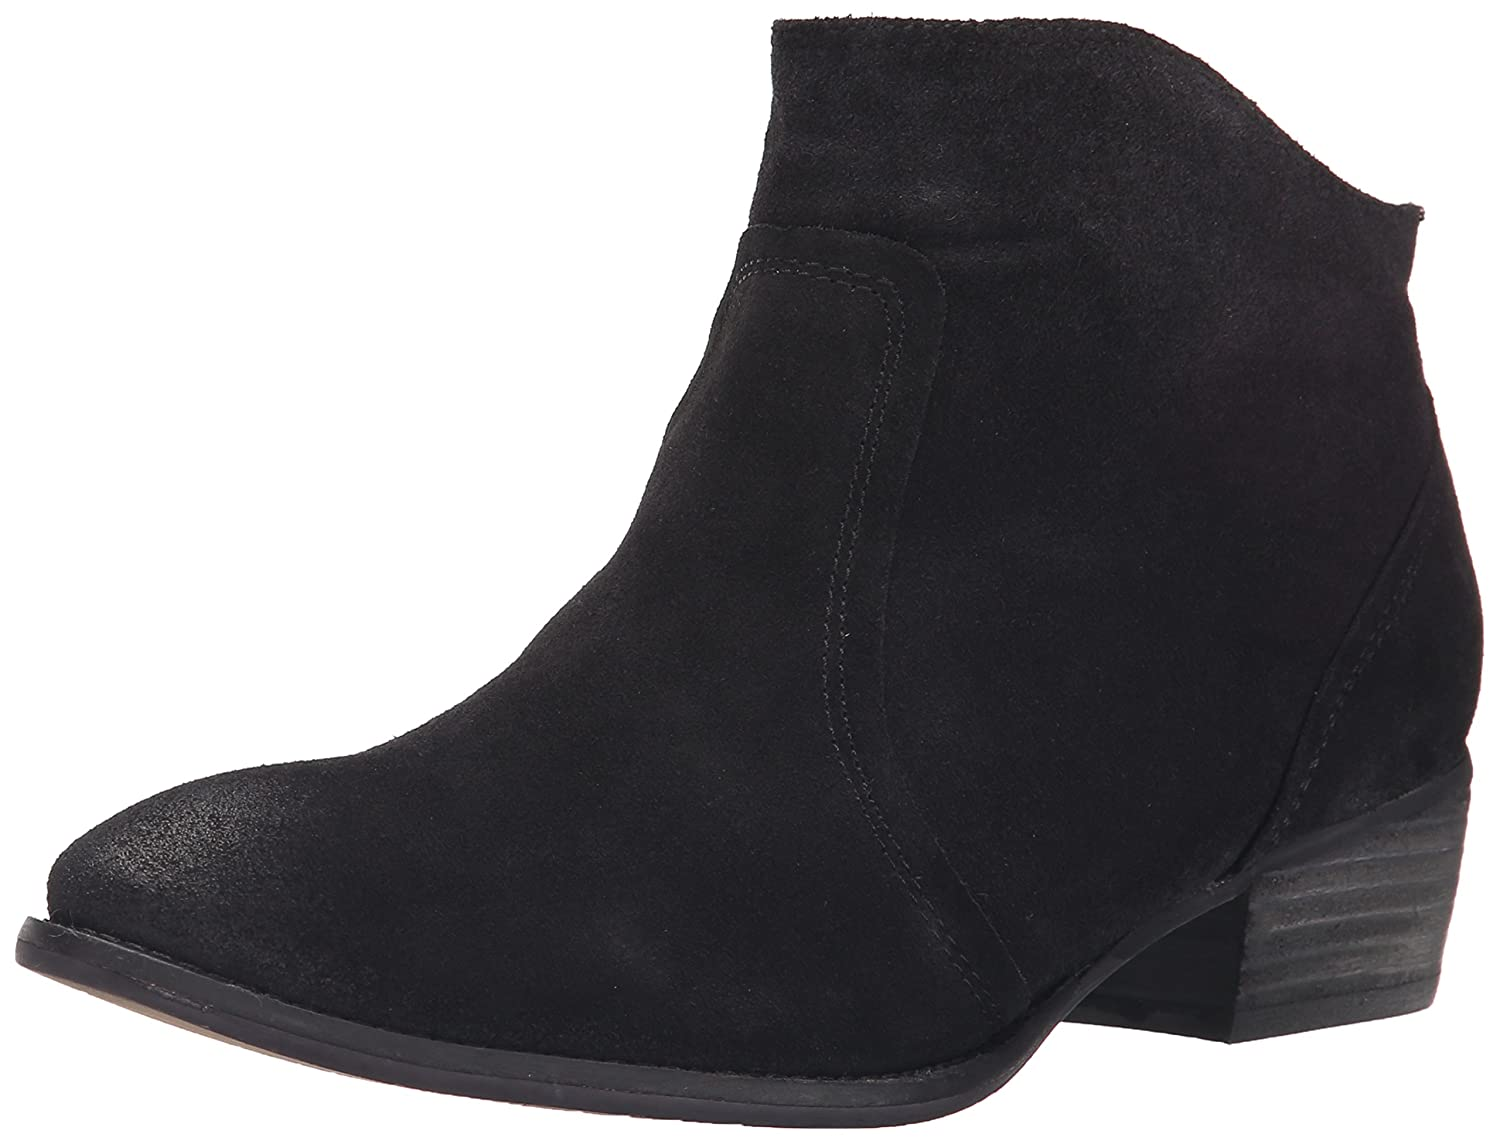 Seychelles Women's Reunited Boot Black Suede